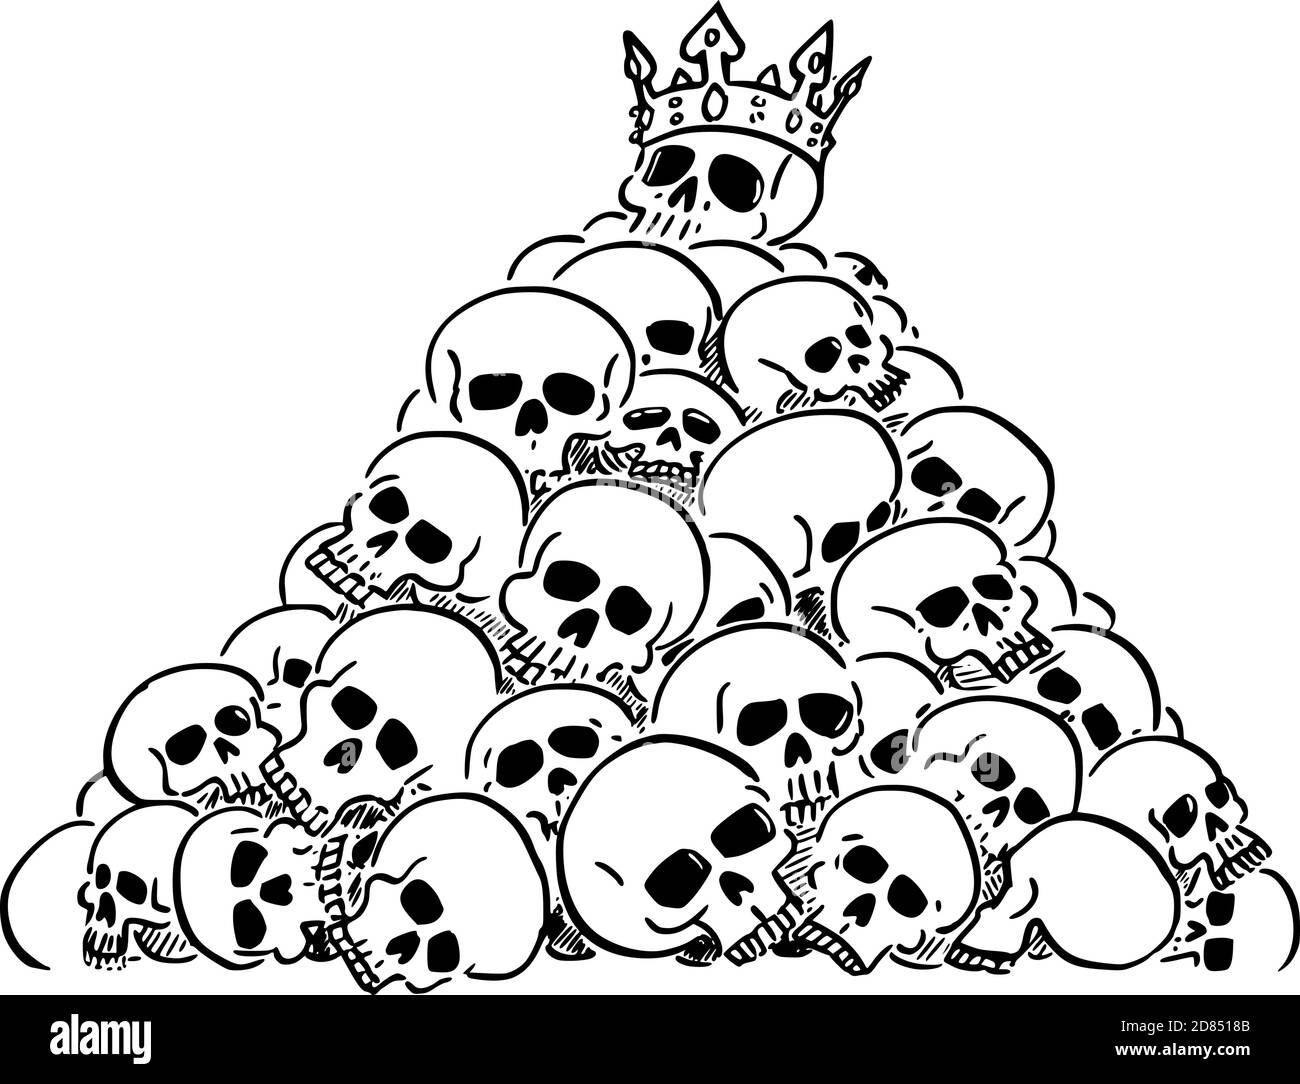 Vector cartoon illustration of heap or pile of human skulls. Skull of leader or king is on top. Concept of violence, epidemic, war, death, evanescence and fleetingness. Stock Vector